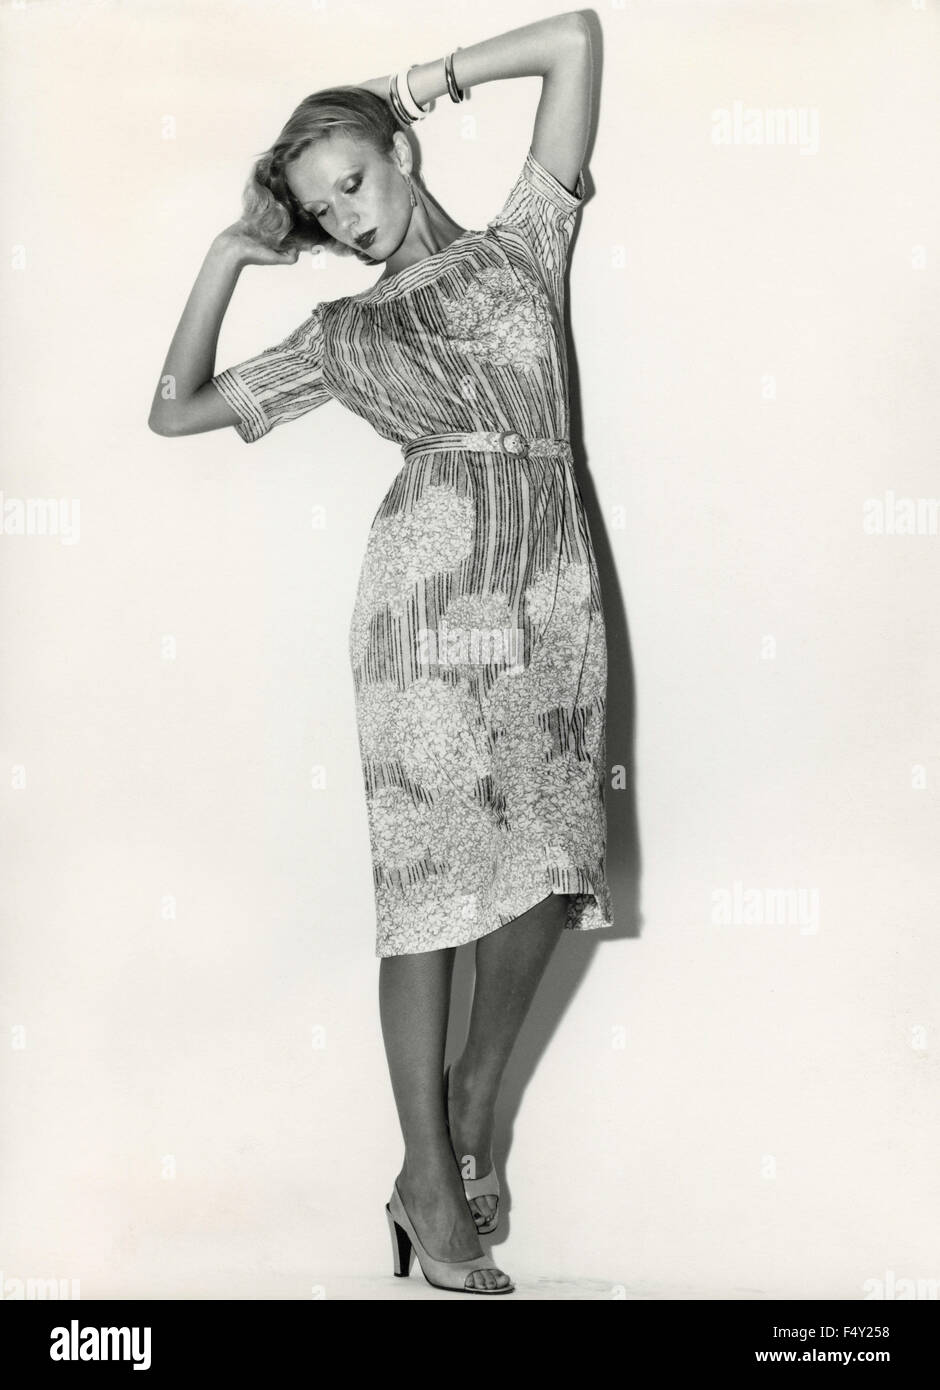 A model wears a dress fabric printed with stripes and flowers - Stock Image